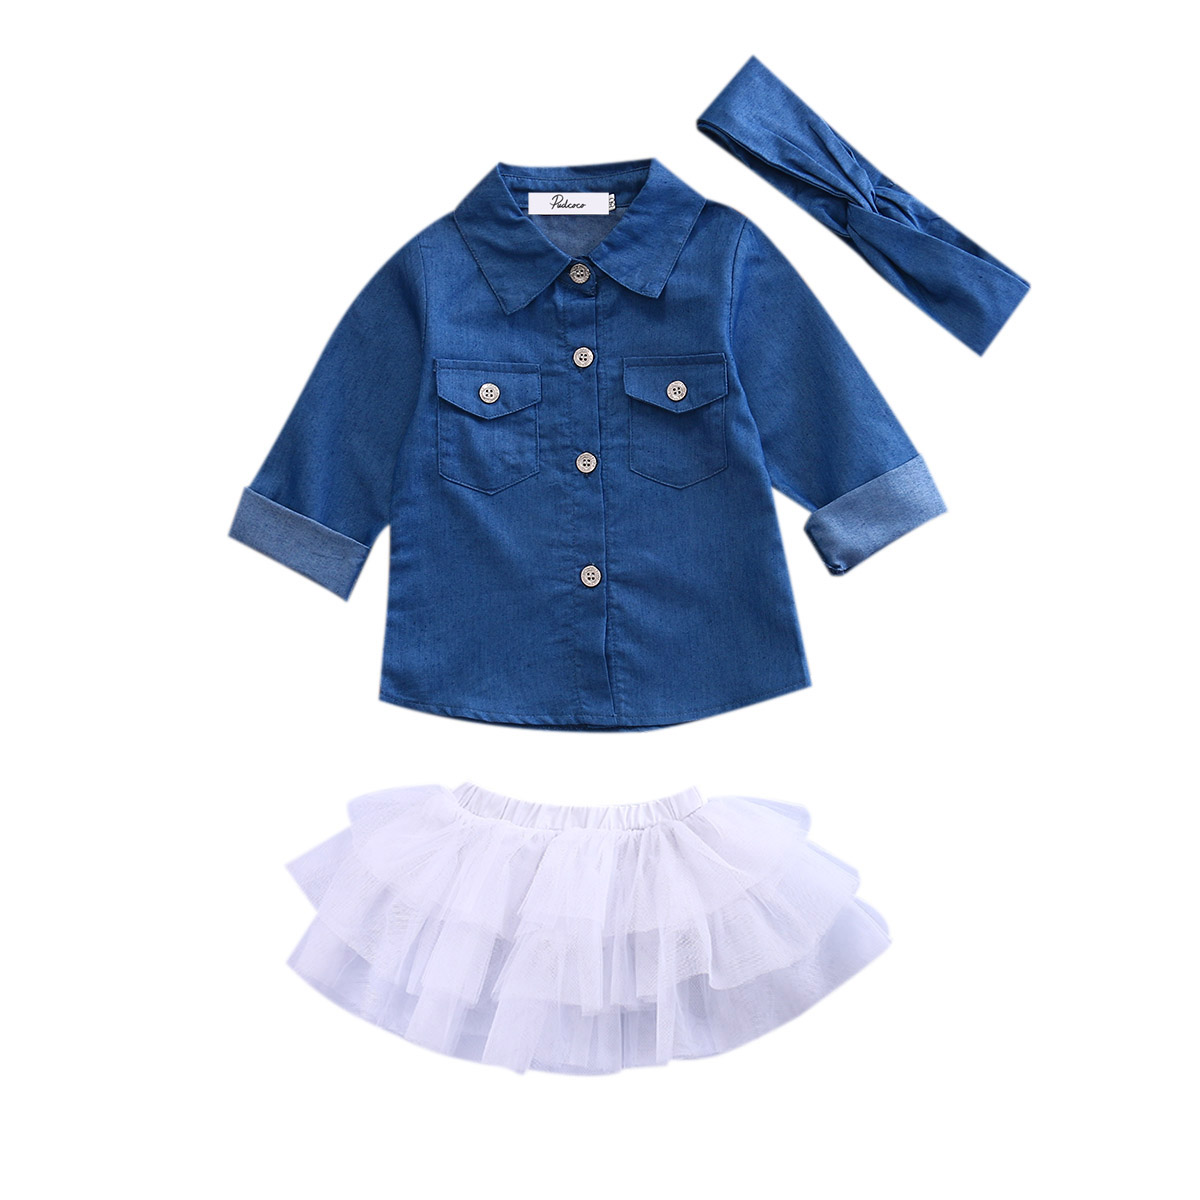 все цены на 3pcs New Kids Baby Girls Denim Tops Long Sleeve Shirt+White Tutu Skirts + Headband Outfits Set 1-5Y онлайн